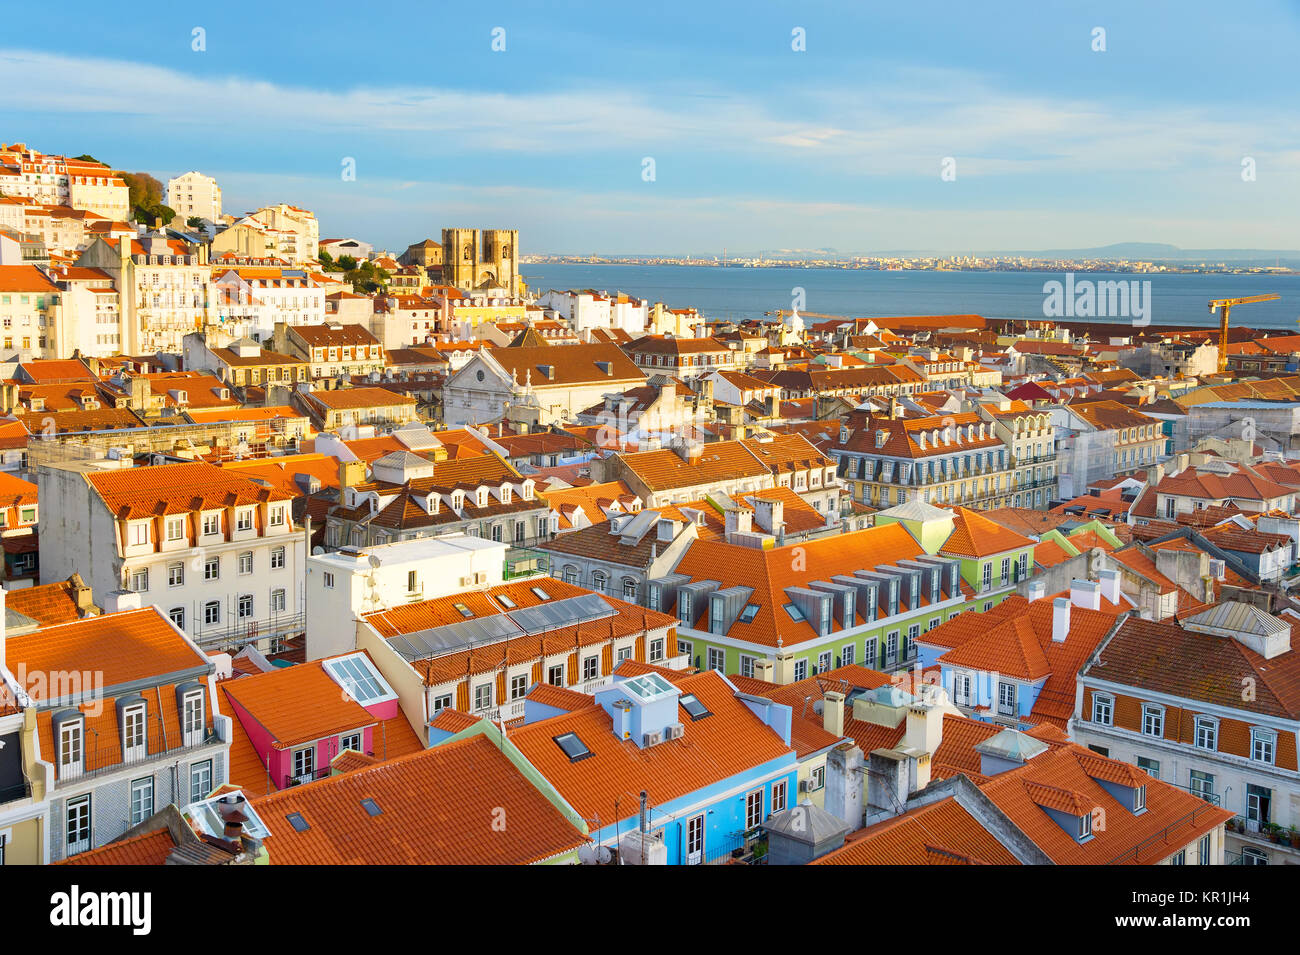 Skyline of Lisbon with famous Lisbon Cathedral at sunset. Portugal - Stock Image